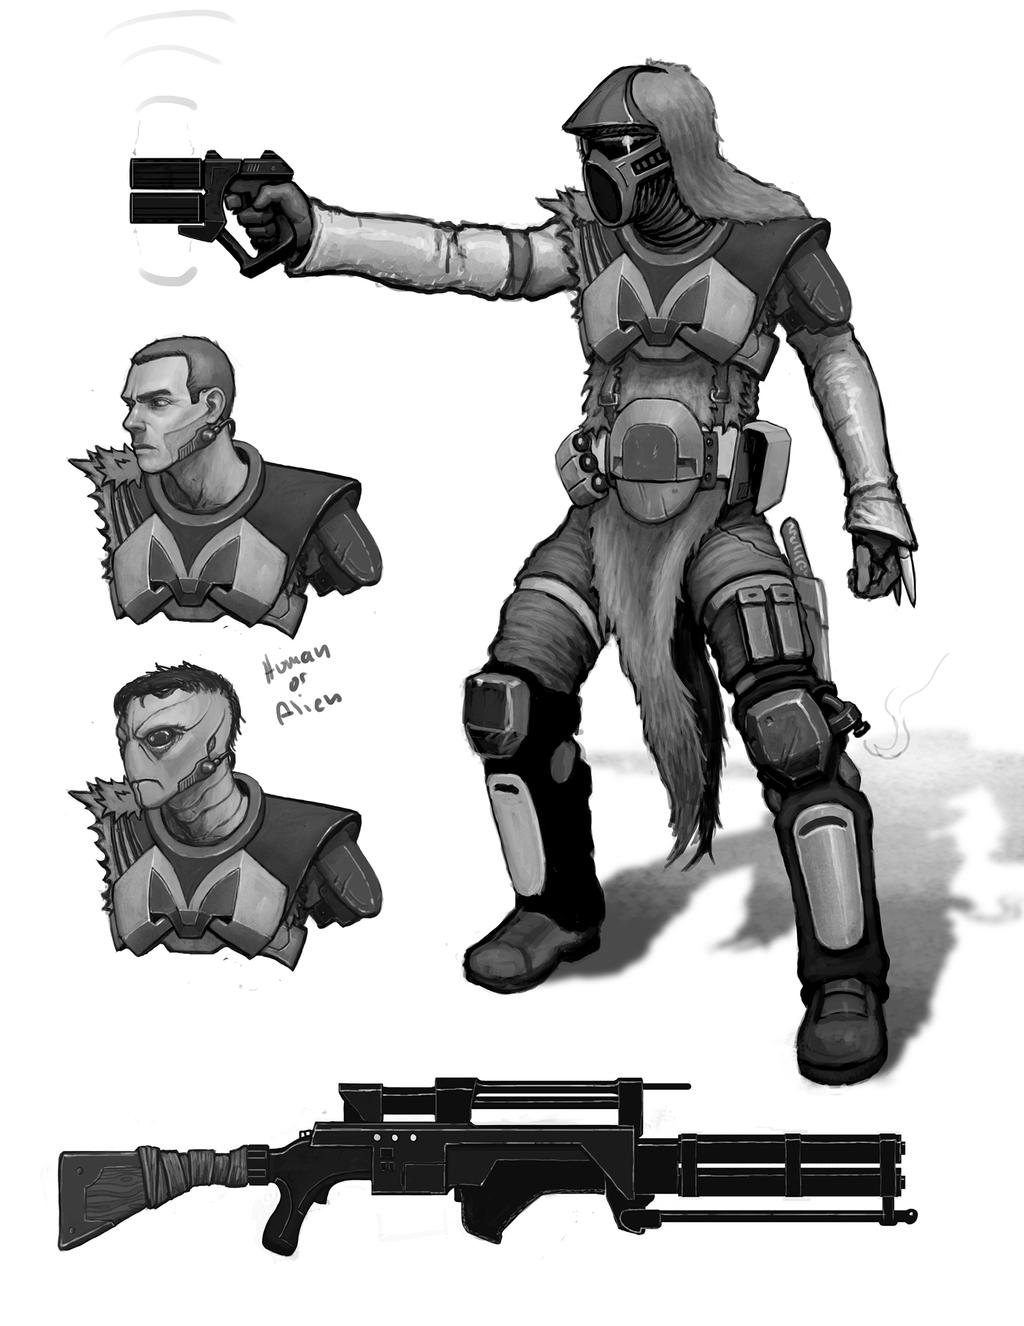 bounty_hunter_concept___3_by_philldwill-